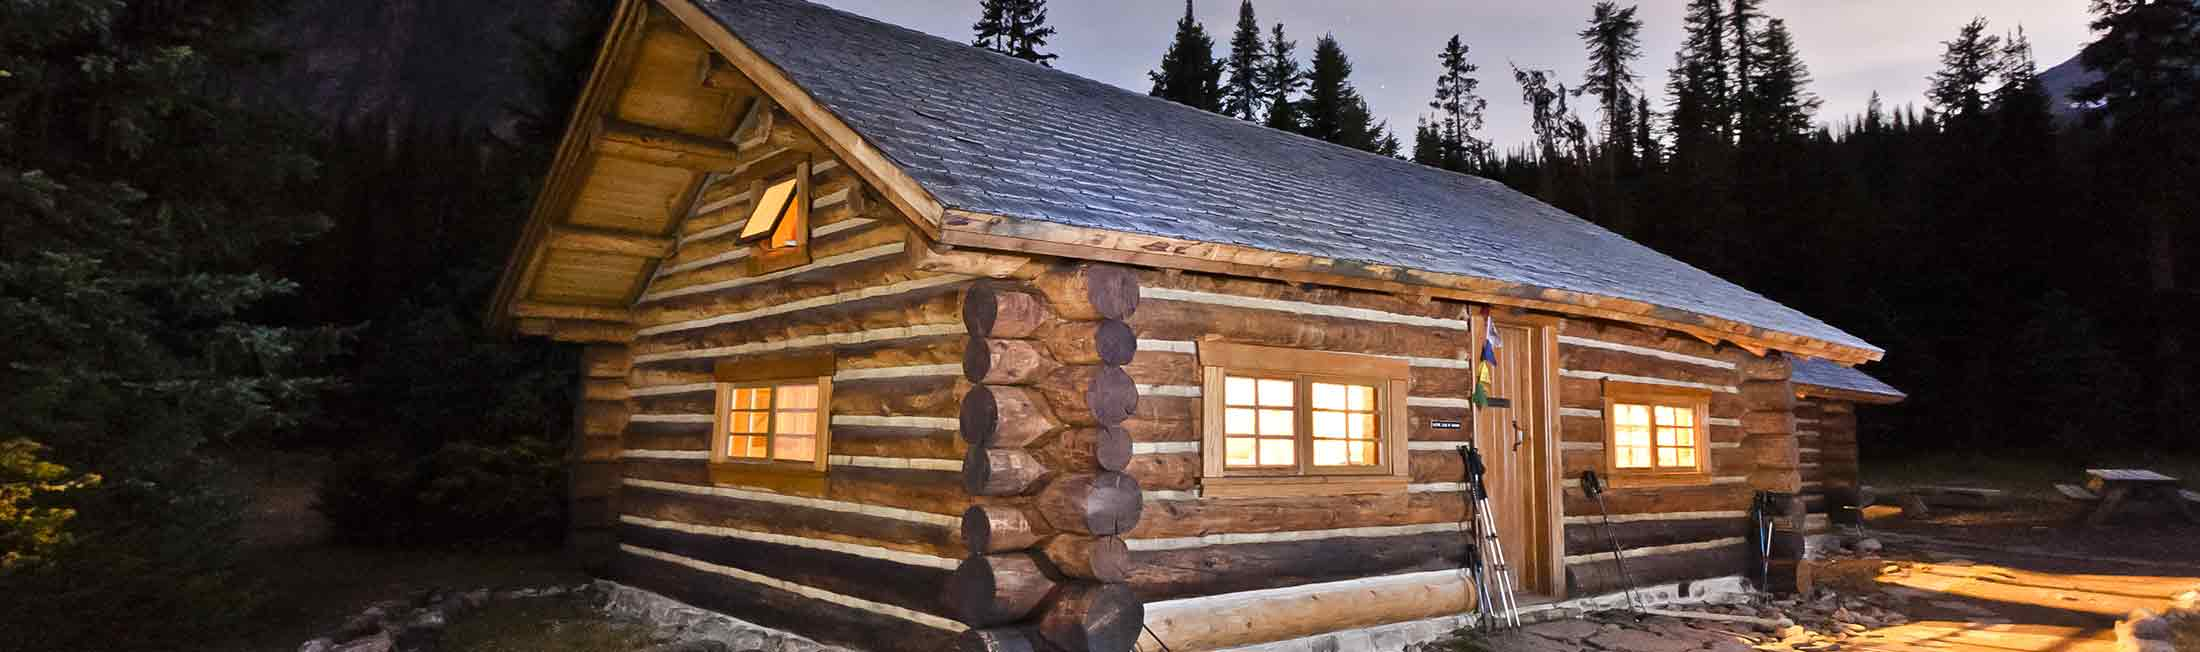 cabins colter rental jackson park in hole bay traveler article national teton grand cabin